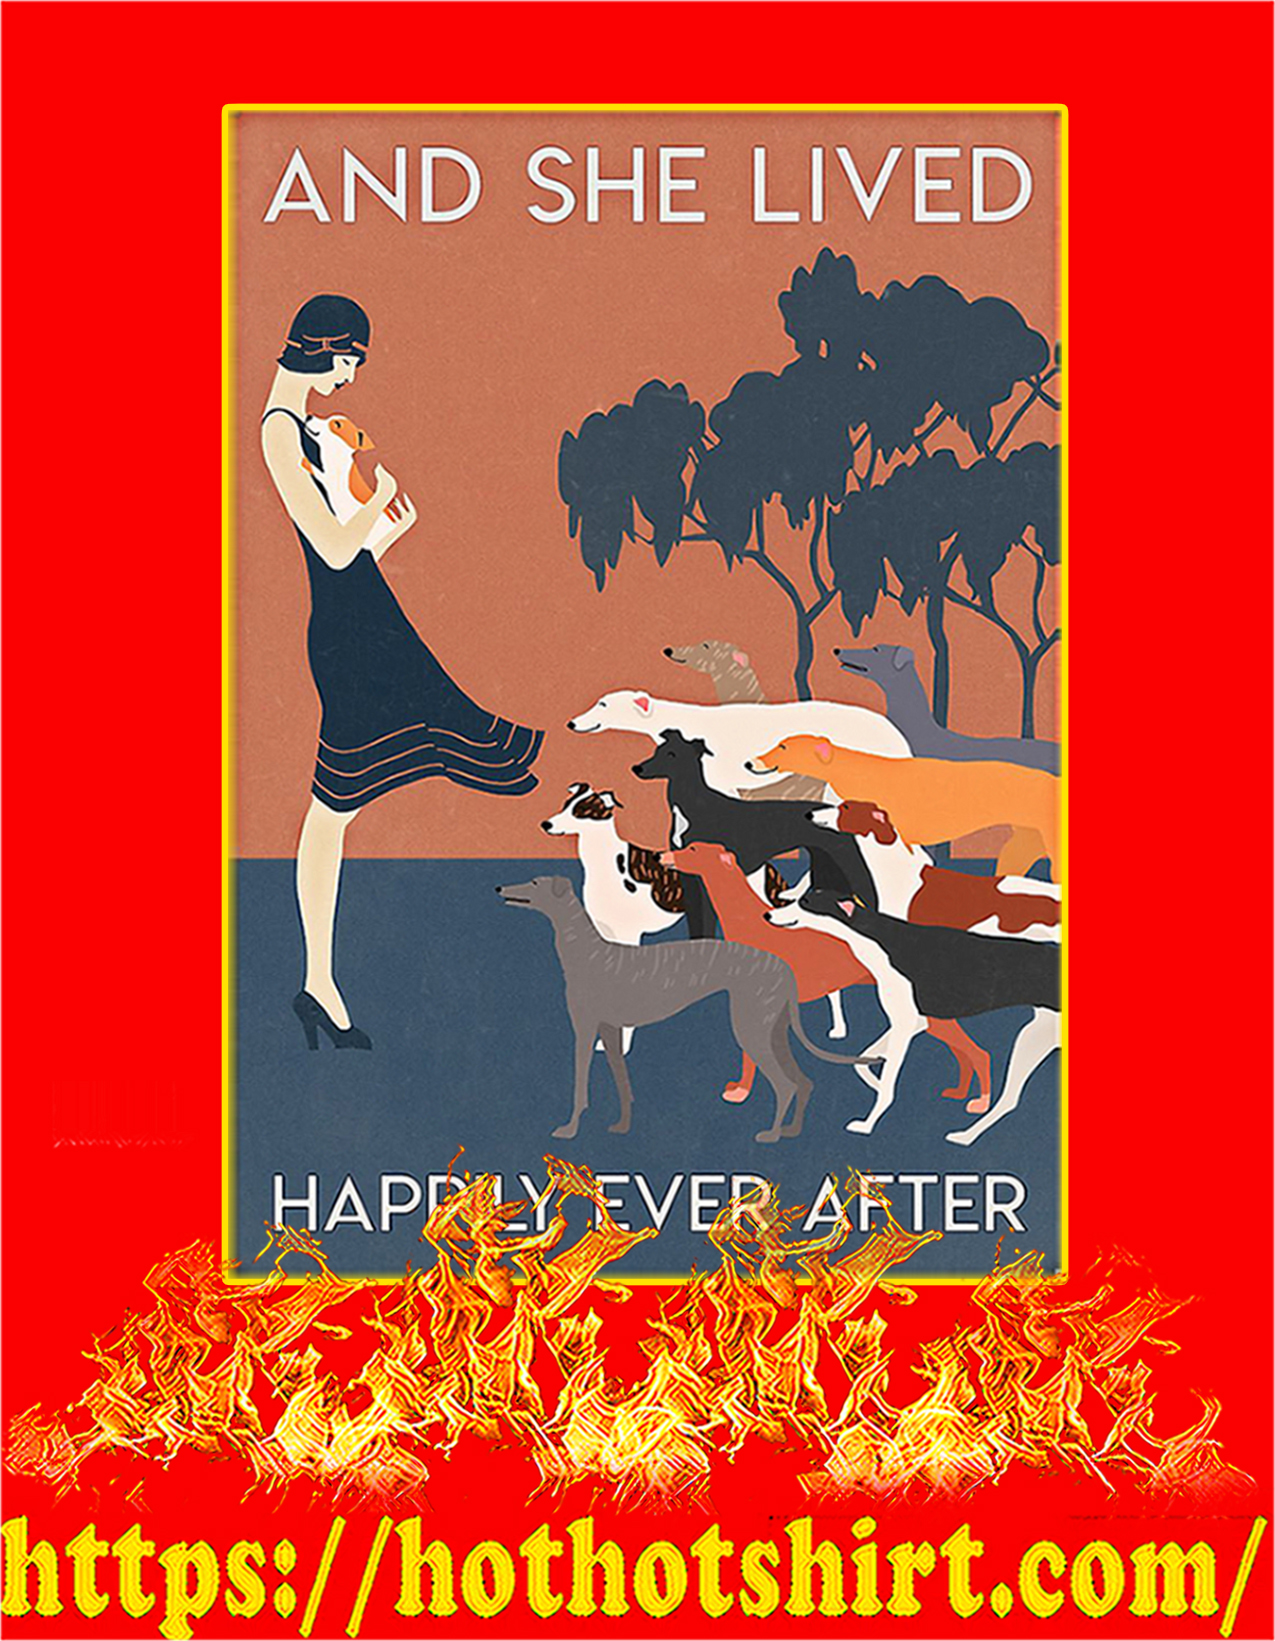 Greyhound And she lived happily ever after poster - A2